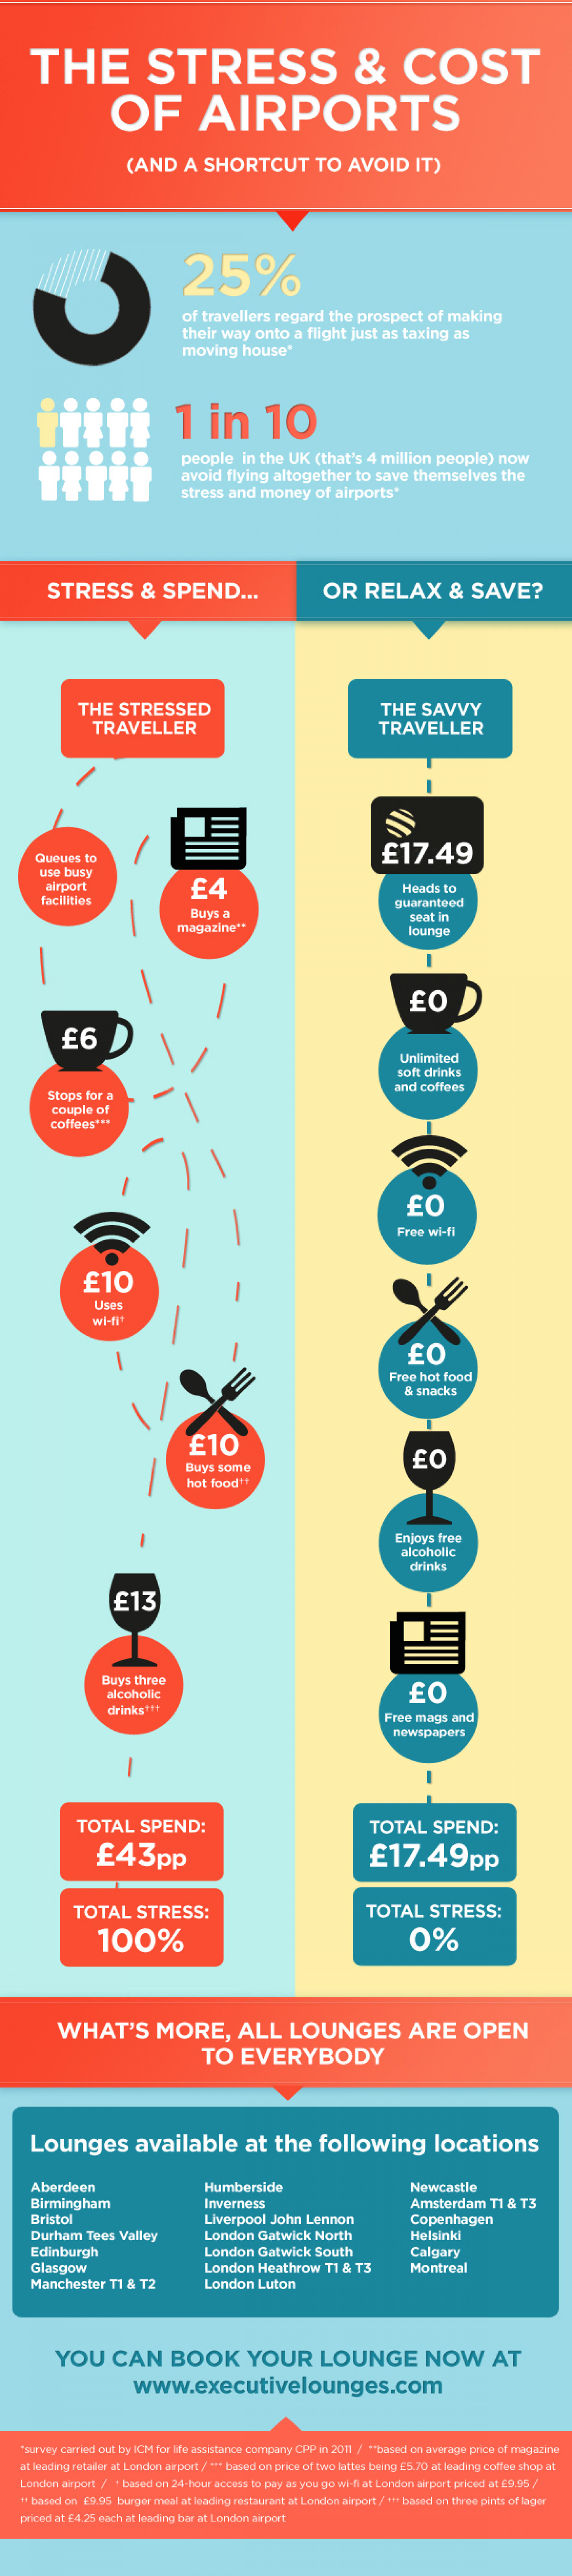 The Stress & Cost Of Airports Infographic